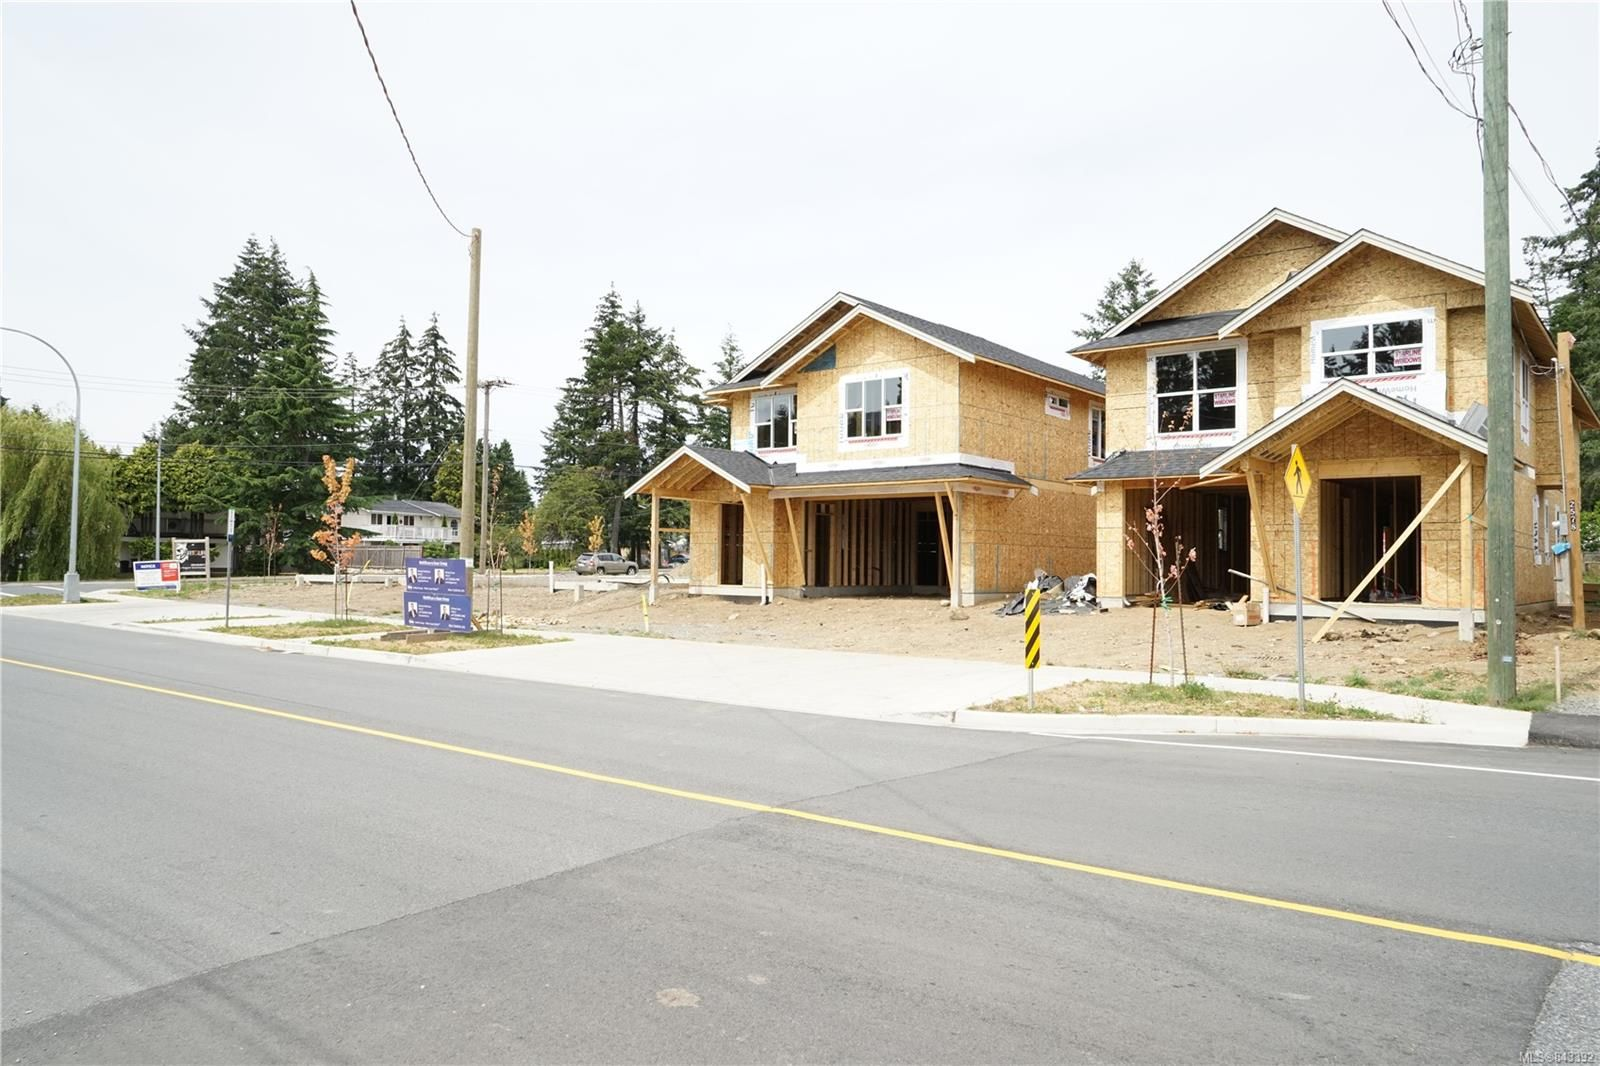 Photo 2: Photos: 2584 Rosstown Rd in NANAIMO: Na Diver Lake House for sale (Nanaimo)  : MLS®# 843392